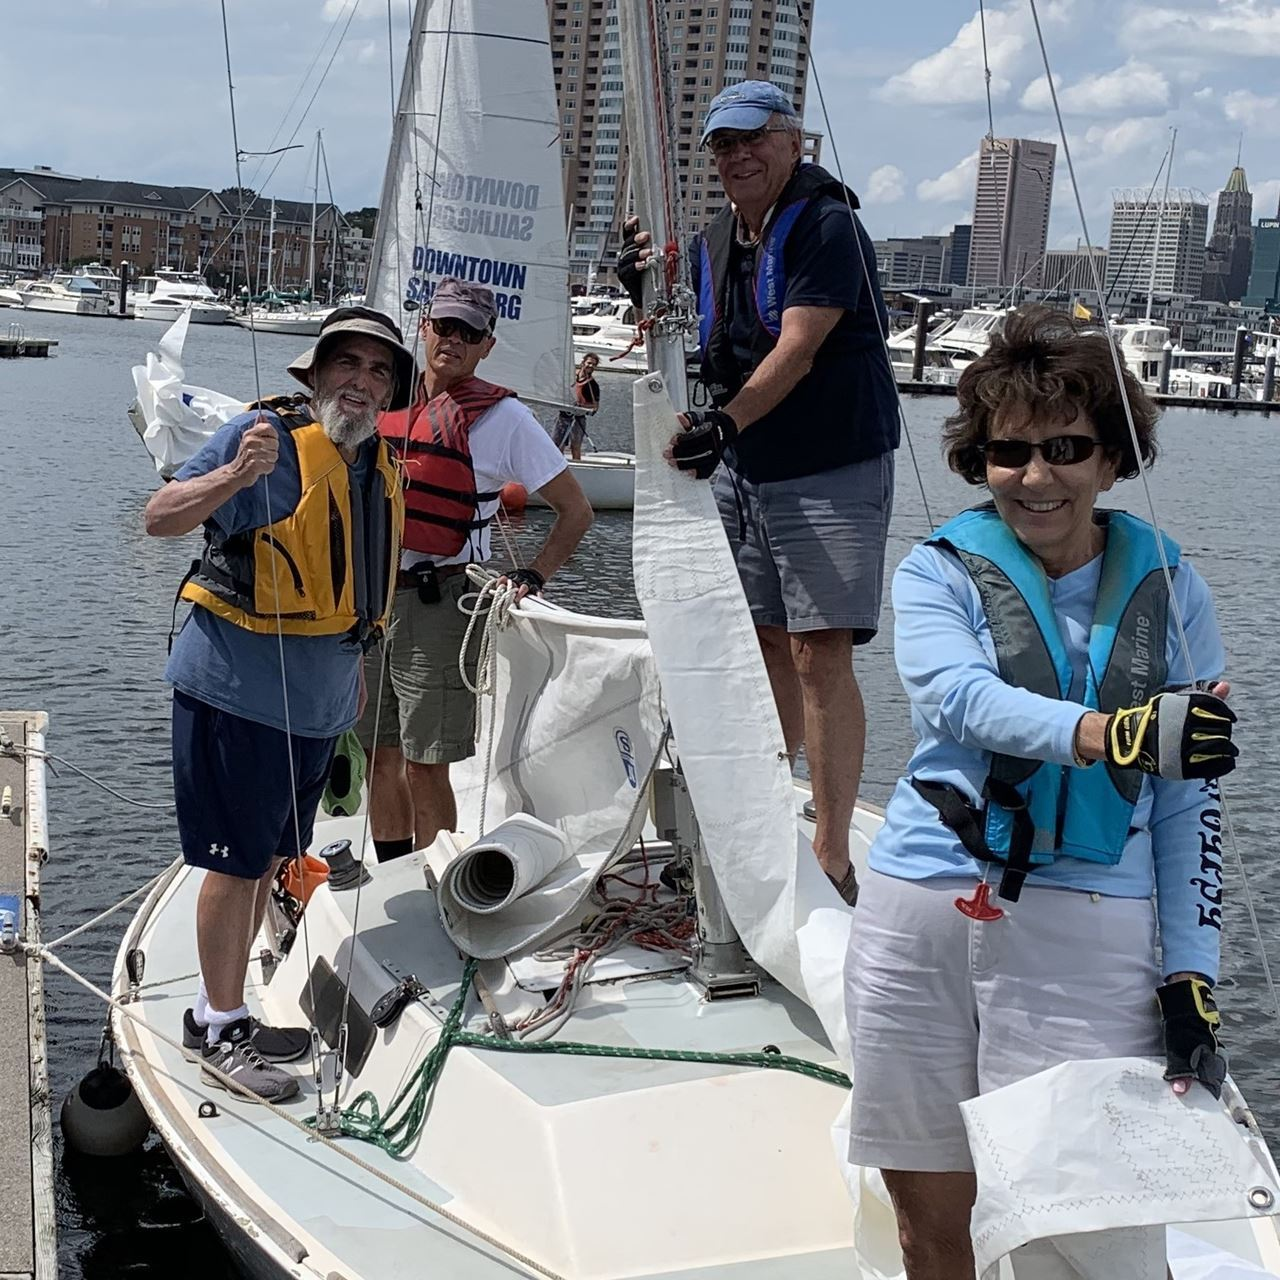 Members enjoy an afternoon sail